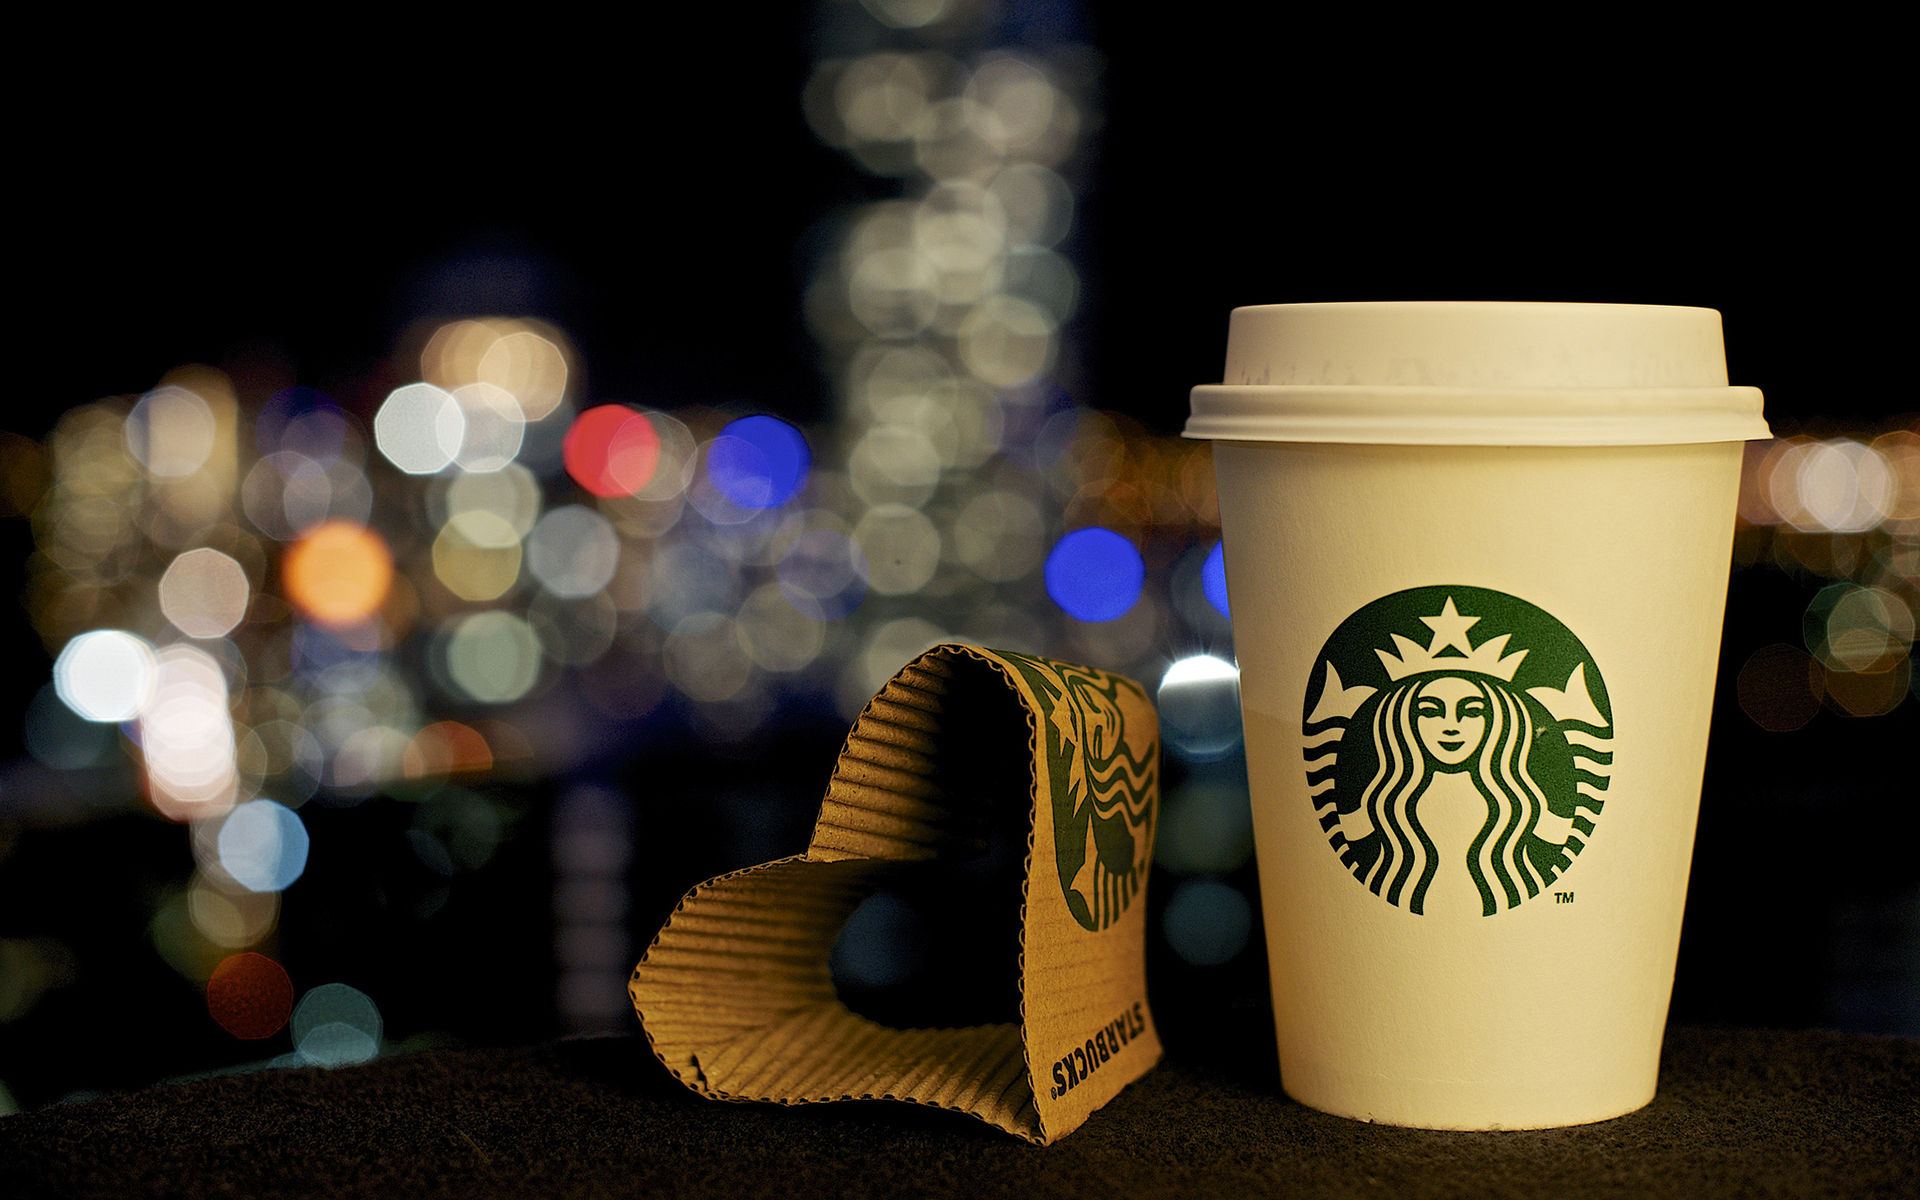 49 Coffee Cup Wallpaper Backgrounds On Wallpapersafari